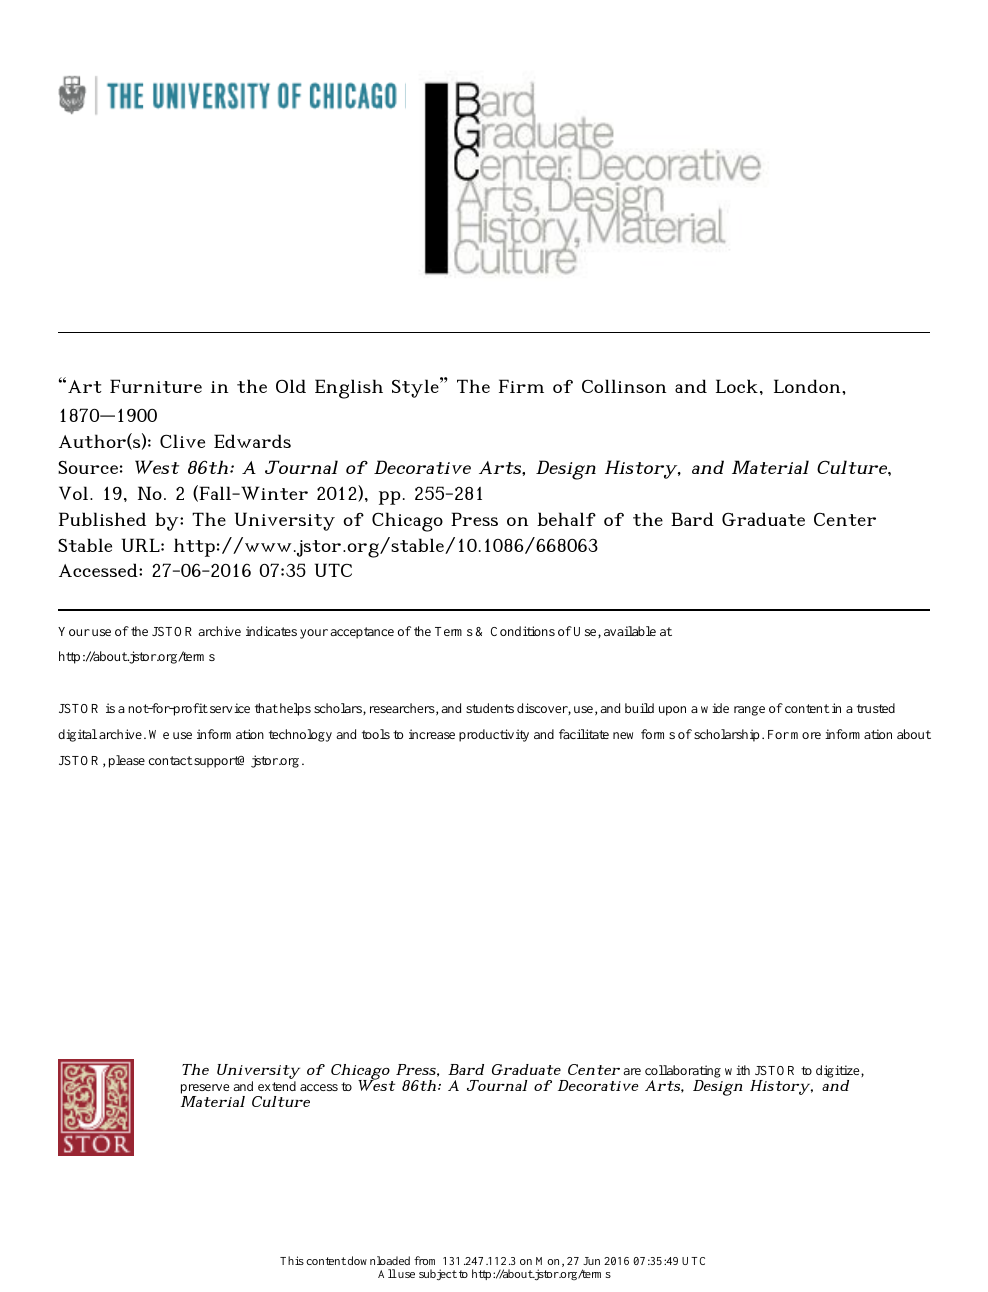 Art Furniture In The Old English Style 1 The Firm Of Collinson And Lock London 1870 1900 Topic Of Research Paper In Art Arts History Of Arts Performing Arts Music Download Scholarly